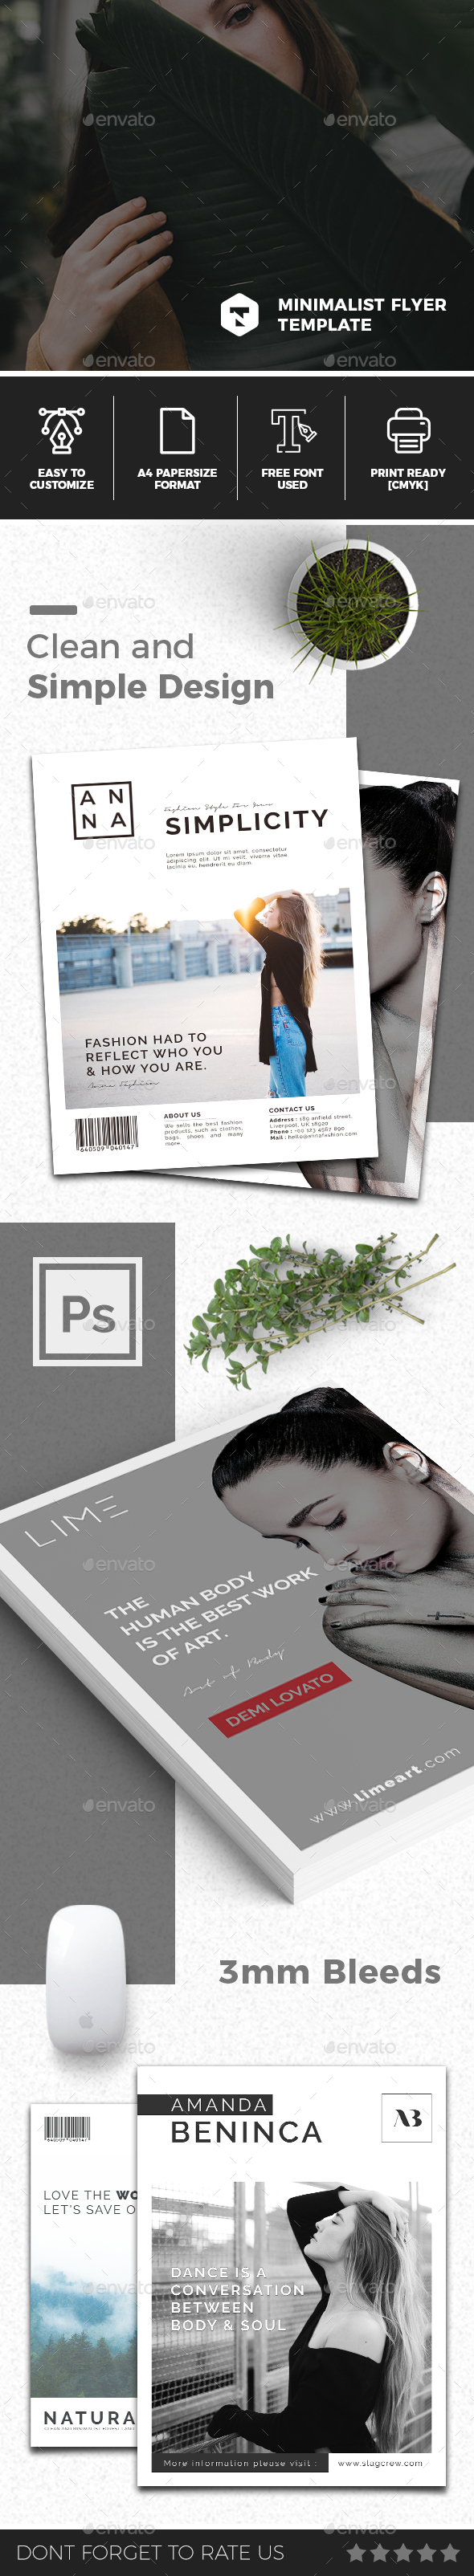 Minimalist Flyer - Flyers Print Templates